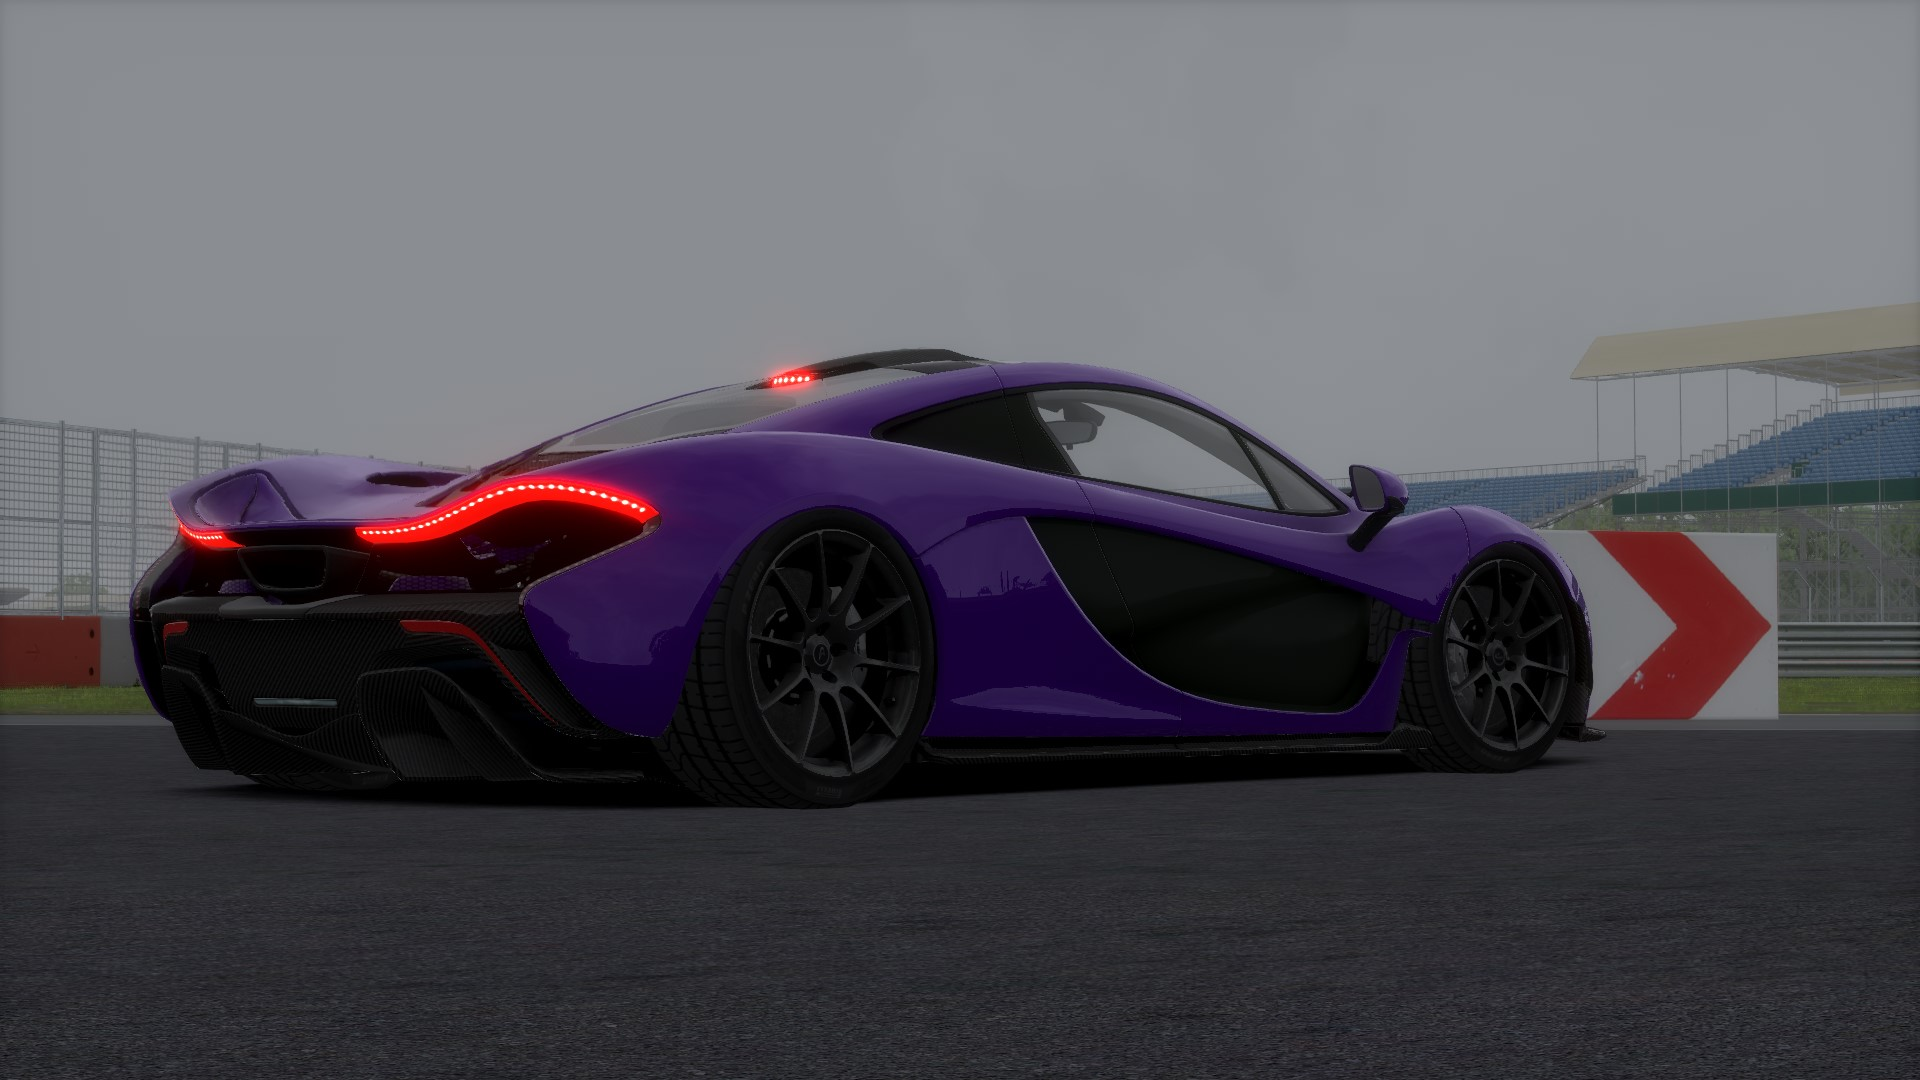 Screenshot_ks_mclaren_p1_silverstone-national_11-8-115-20-23-46.jpg